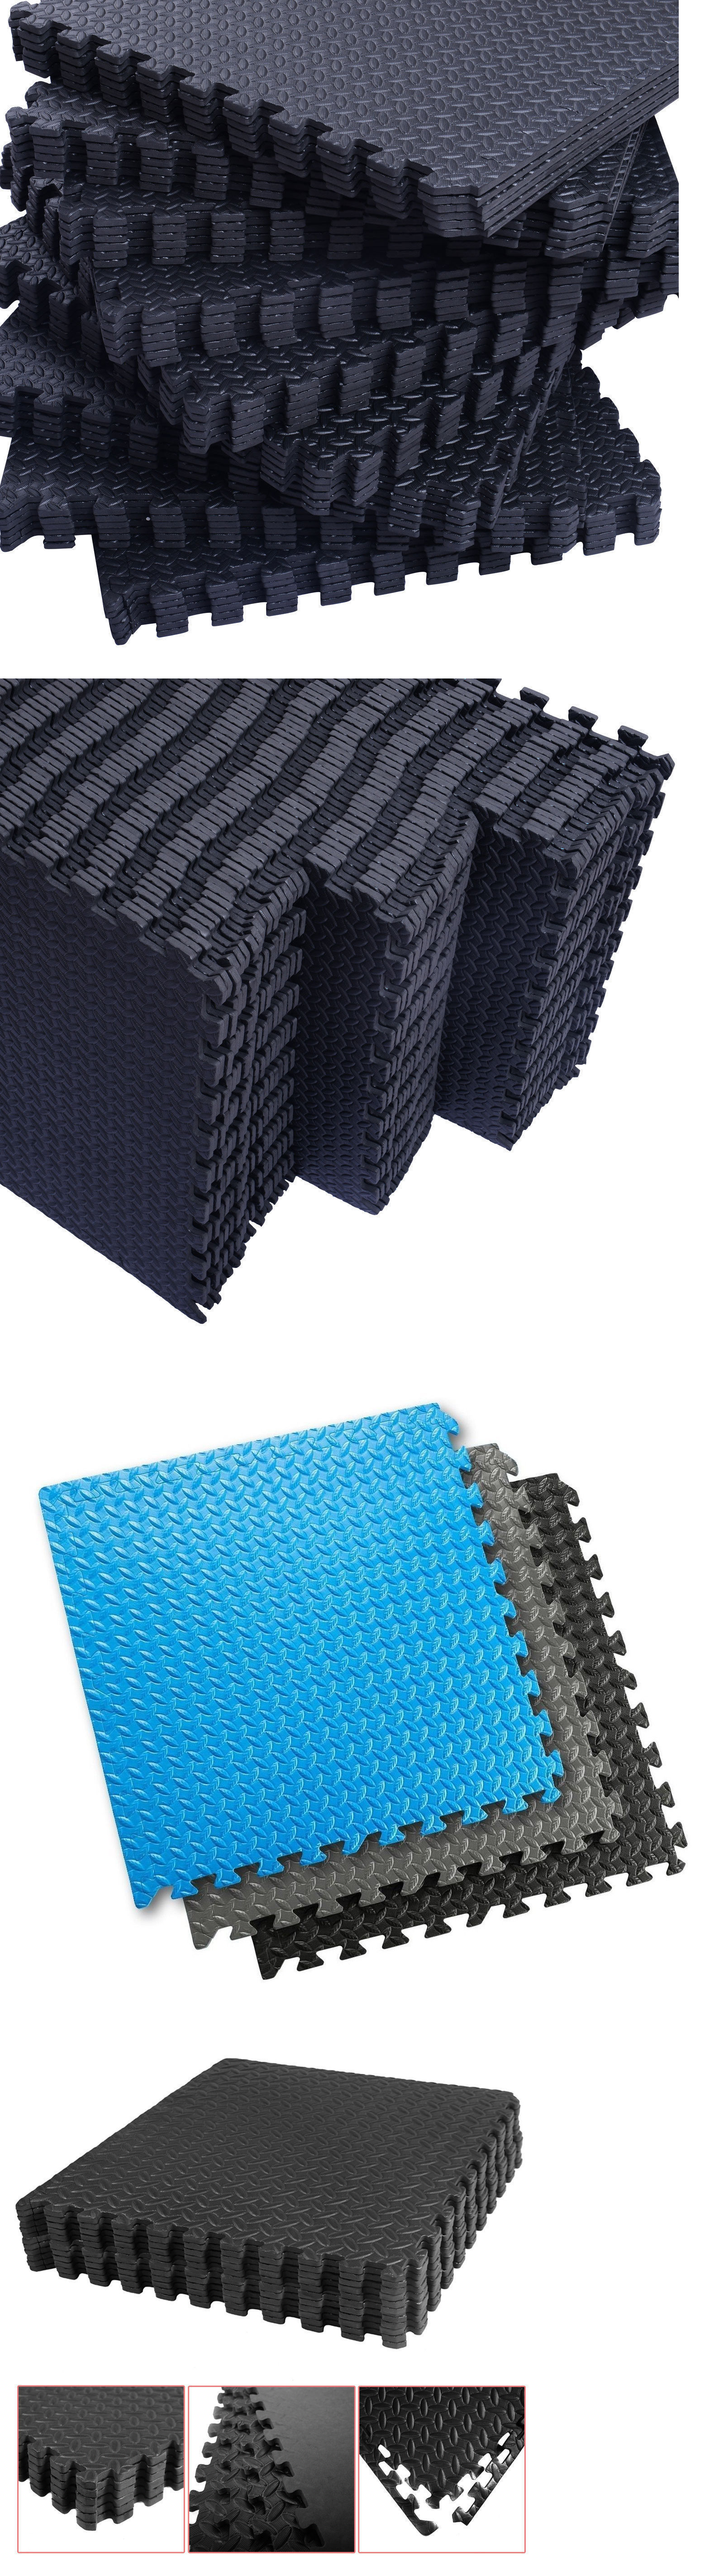 plastic boat patio flexible rubber floor pool grey waterproof pack gym products room home tile interlocking mats restaurant